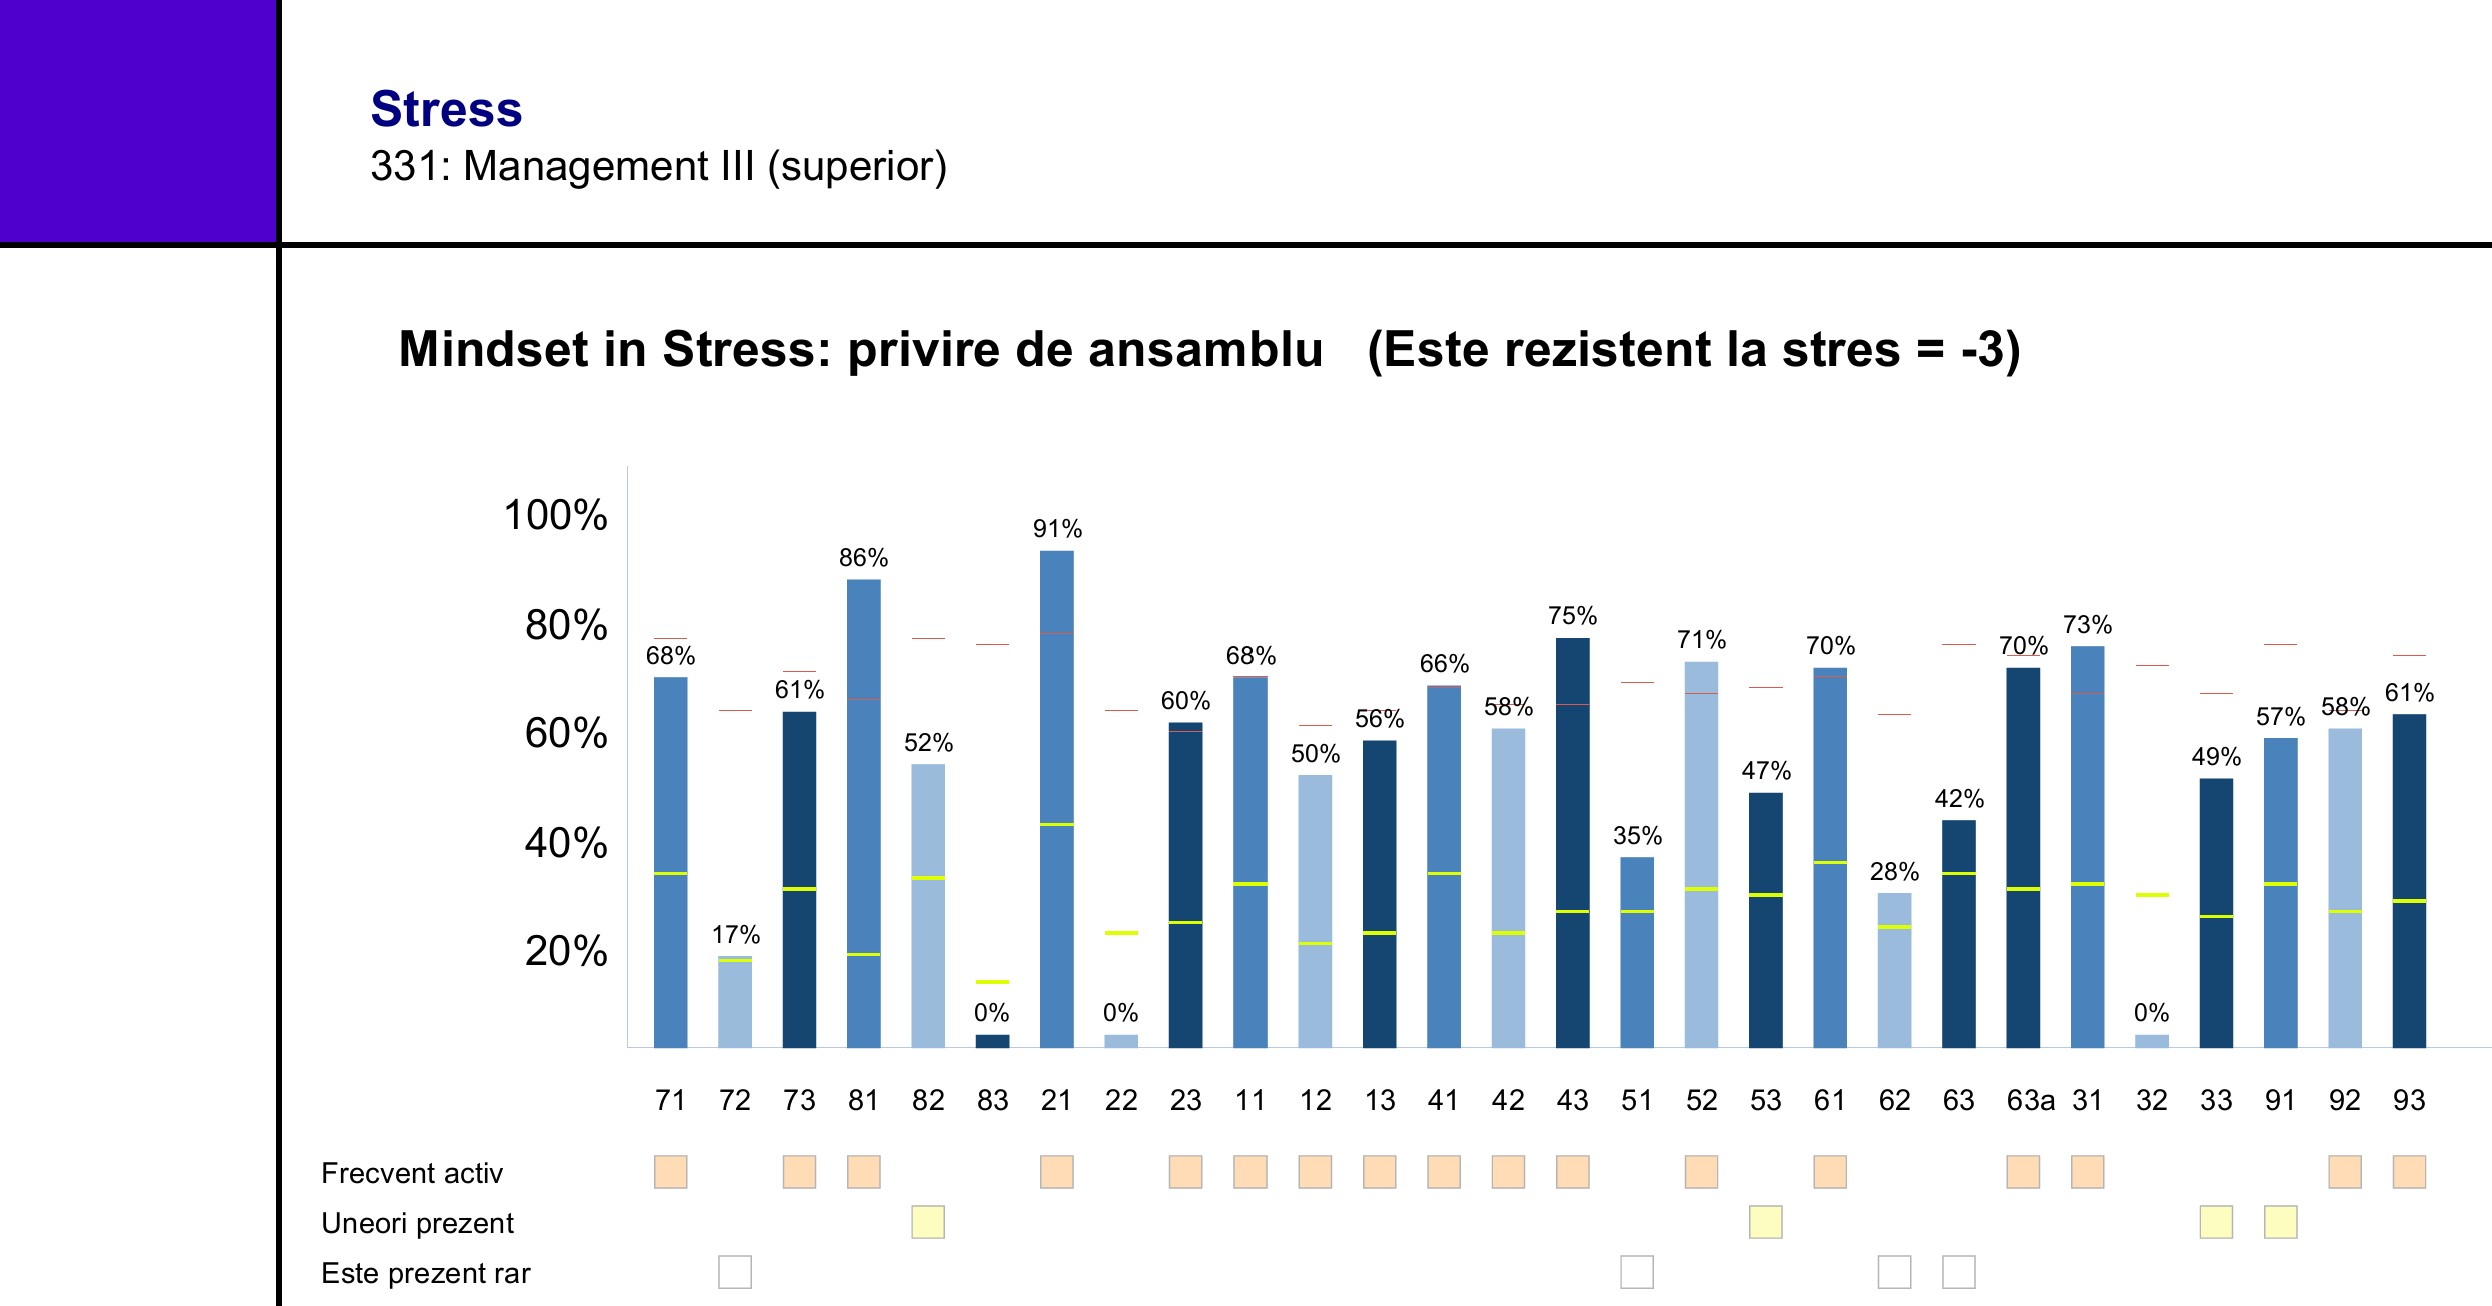 Stress Profile